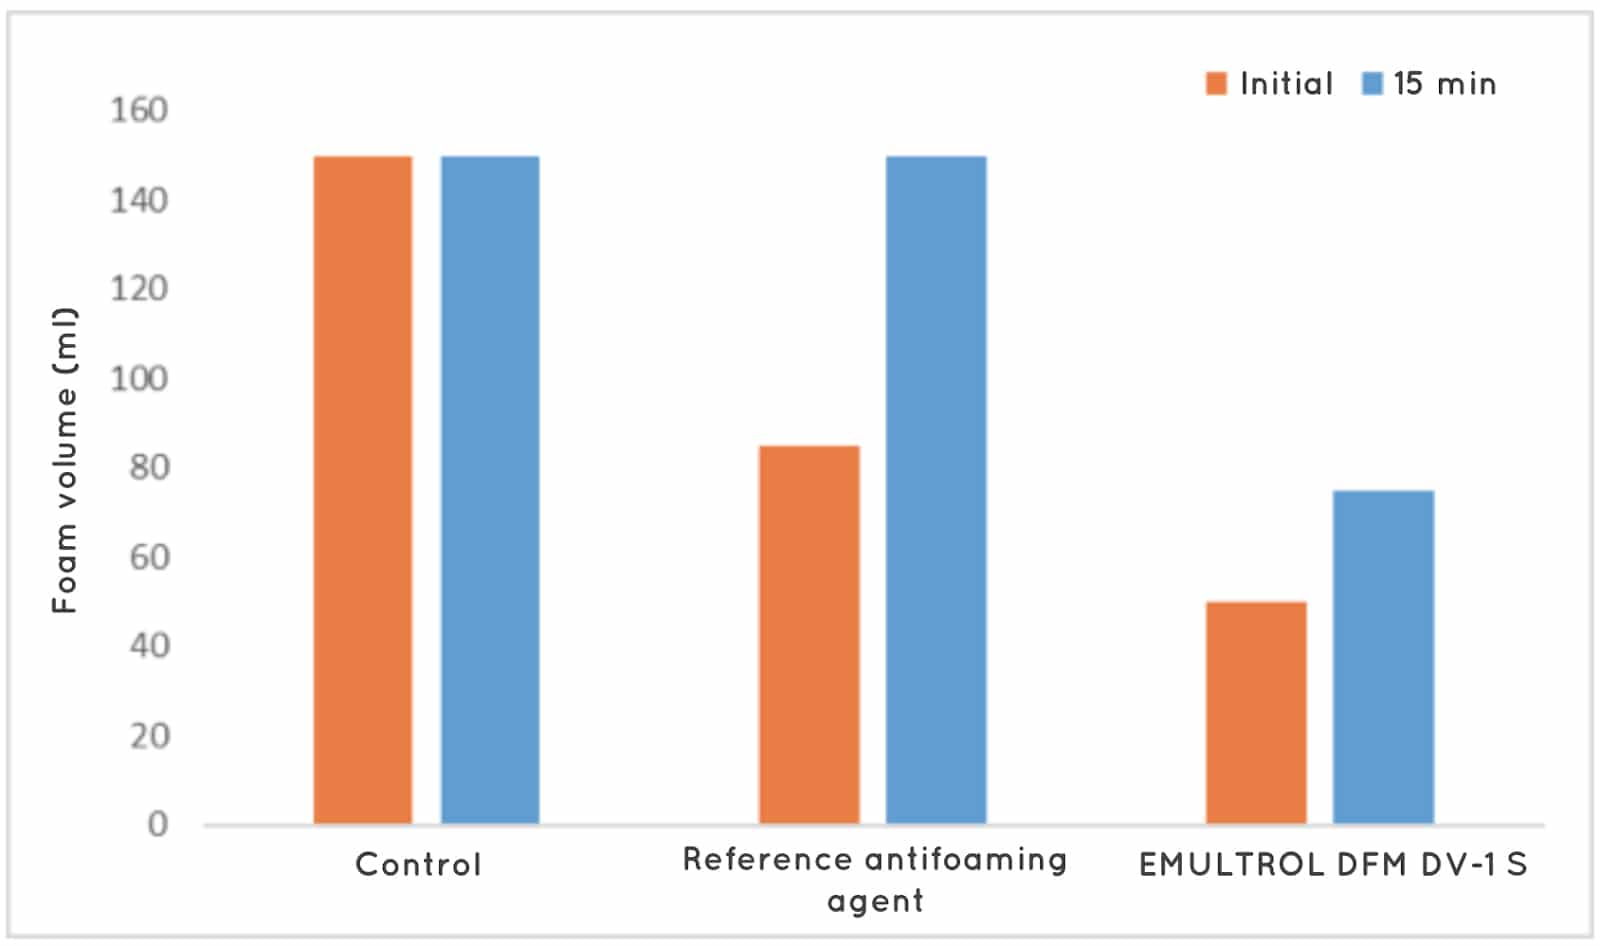 ANTIFOAMING AGENTS FOR ADVERSE MEDIA WITH SURFACTANTS (HIGH ACIDITY OR HIGH ALKALINITY): EMULTROL DFM DV-1, EMULTROL DFM DV-1 S AND EMULTROL DFM DV-30